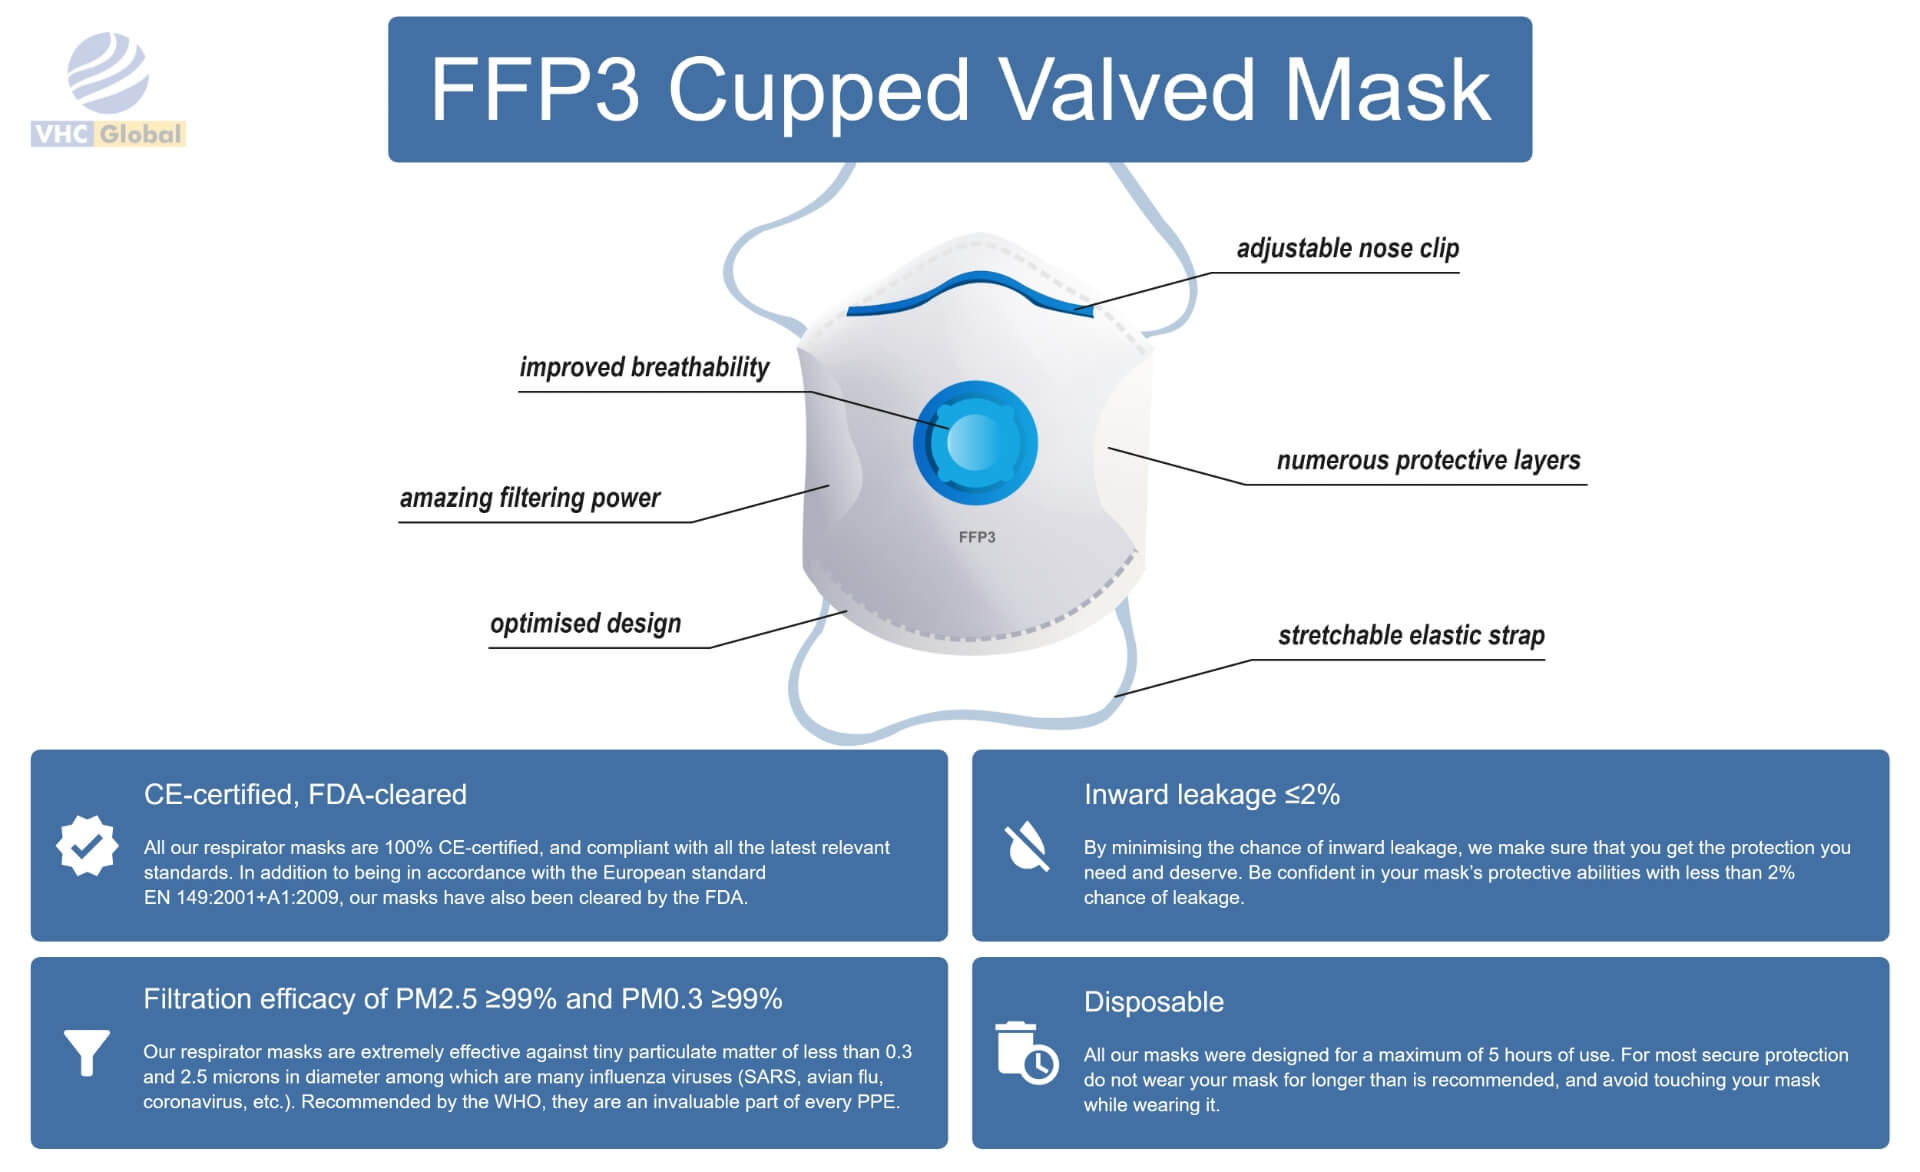 Infographic for the FFP3 Cupped Valved Mask. All details for this mask are on this infographic. From nose to the chin. Adjustable nose clip, improved breathability, numerous protective layers, amazing filtering power, optimized design and stretchable elastic strap